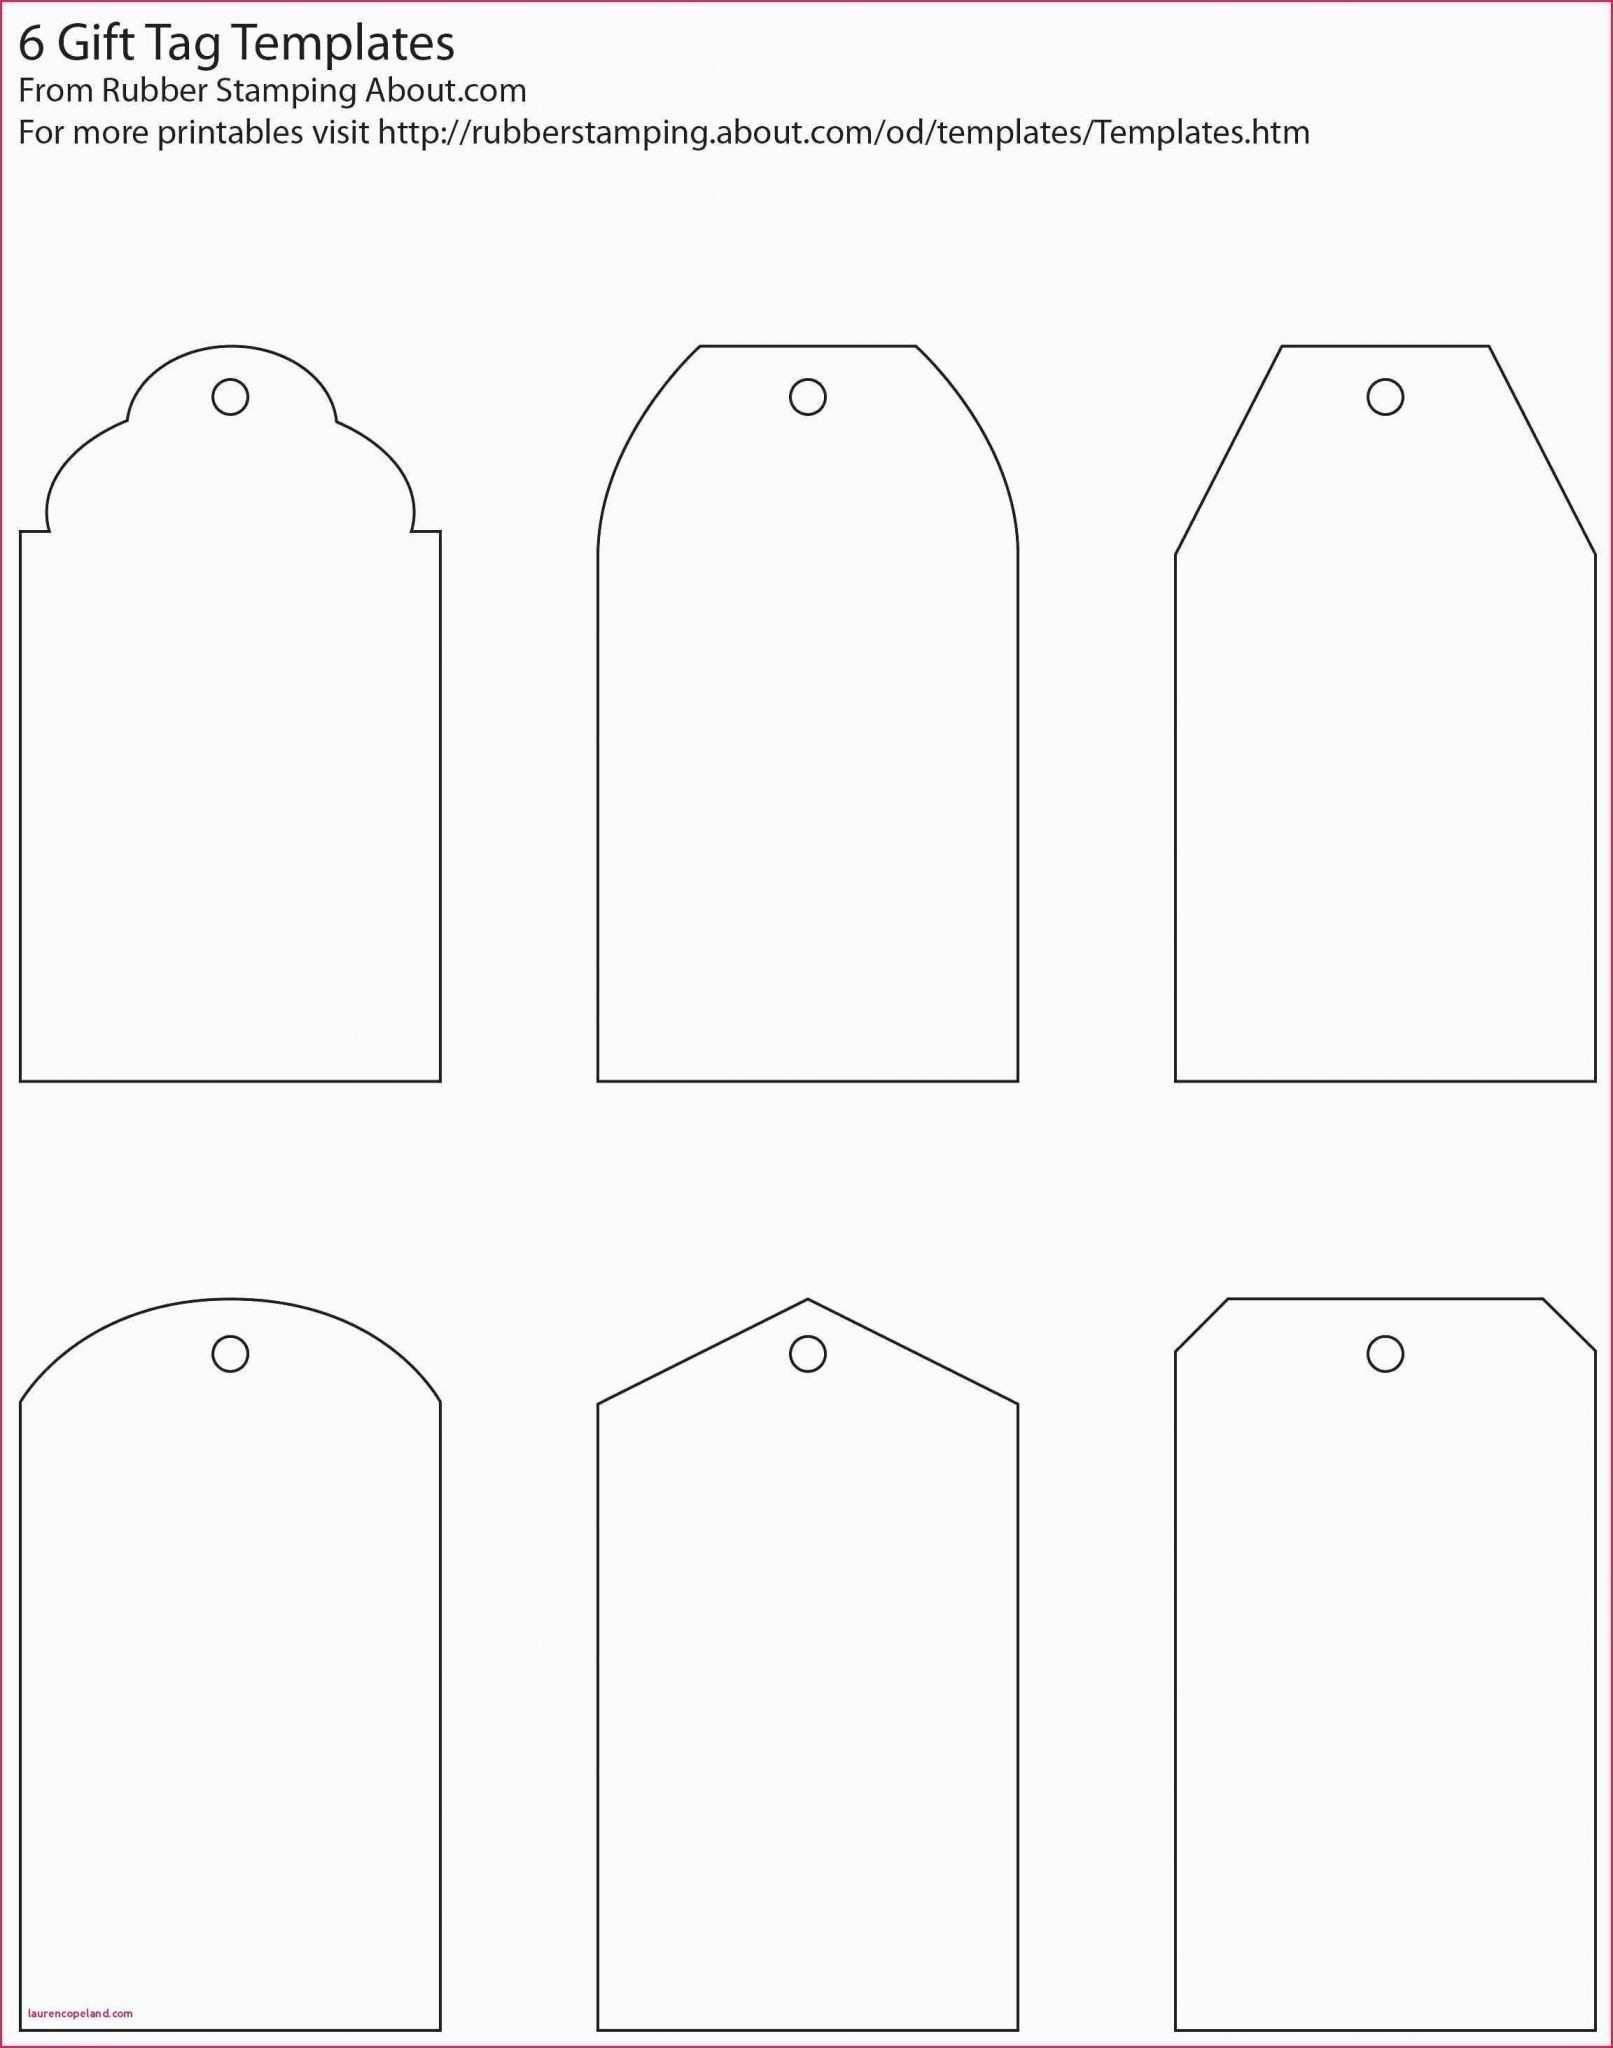 Pin On Examples Printables And Document Templates